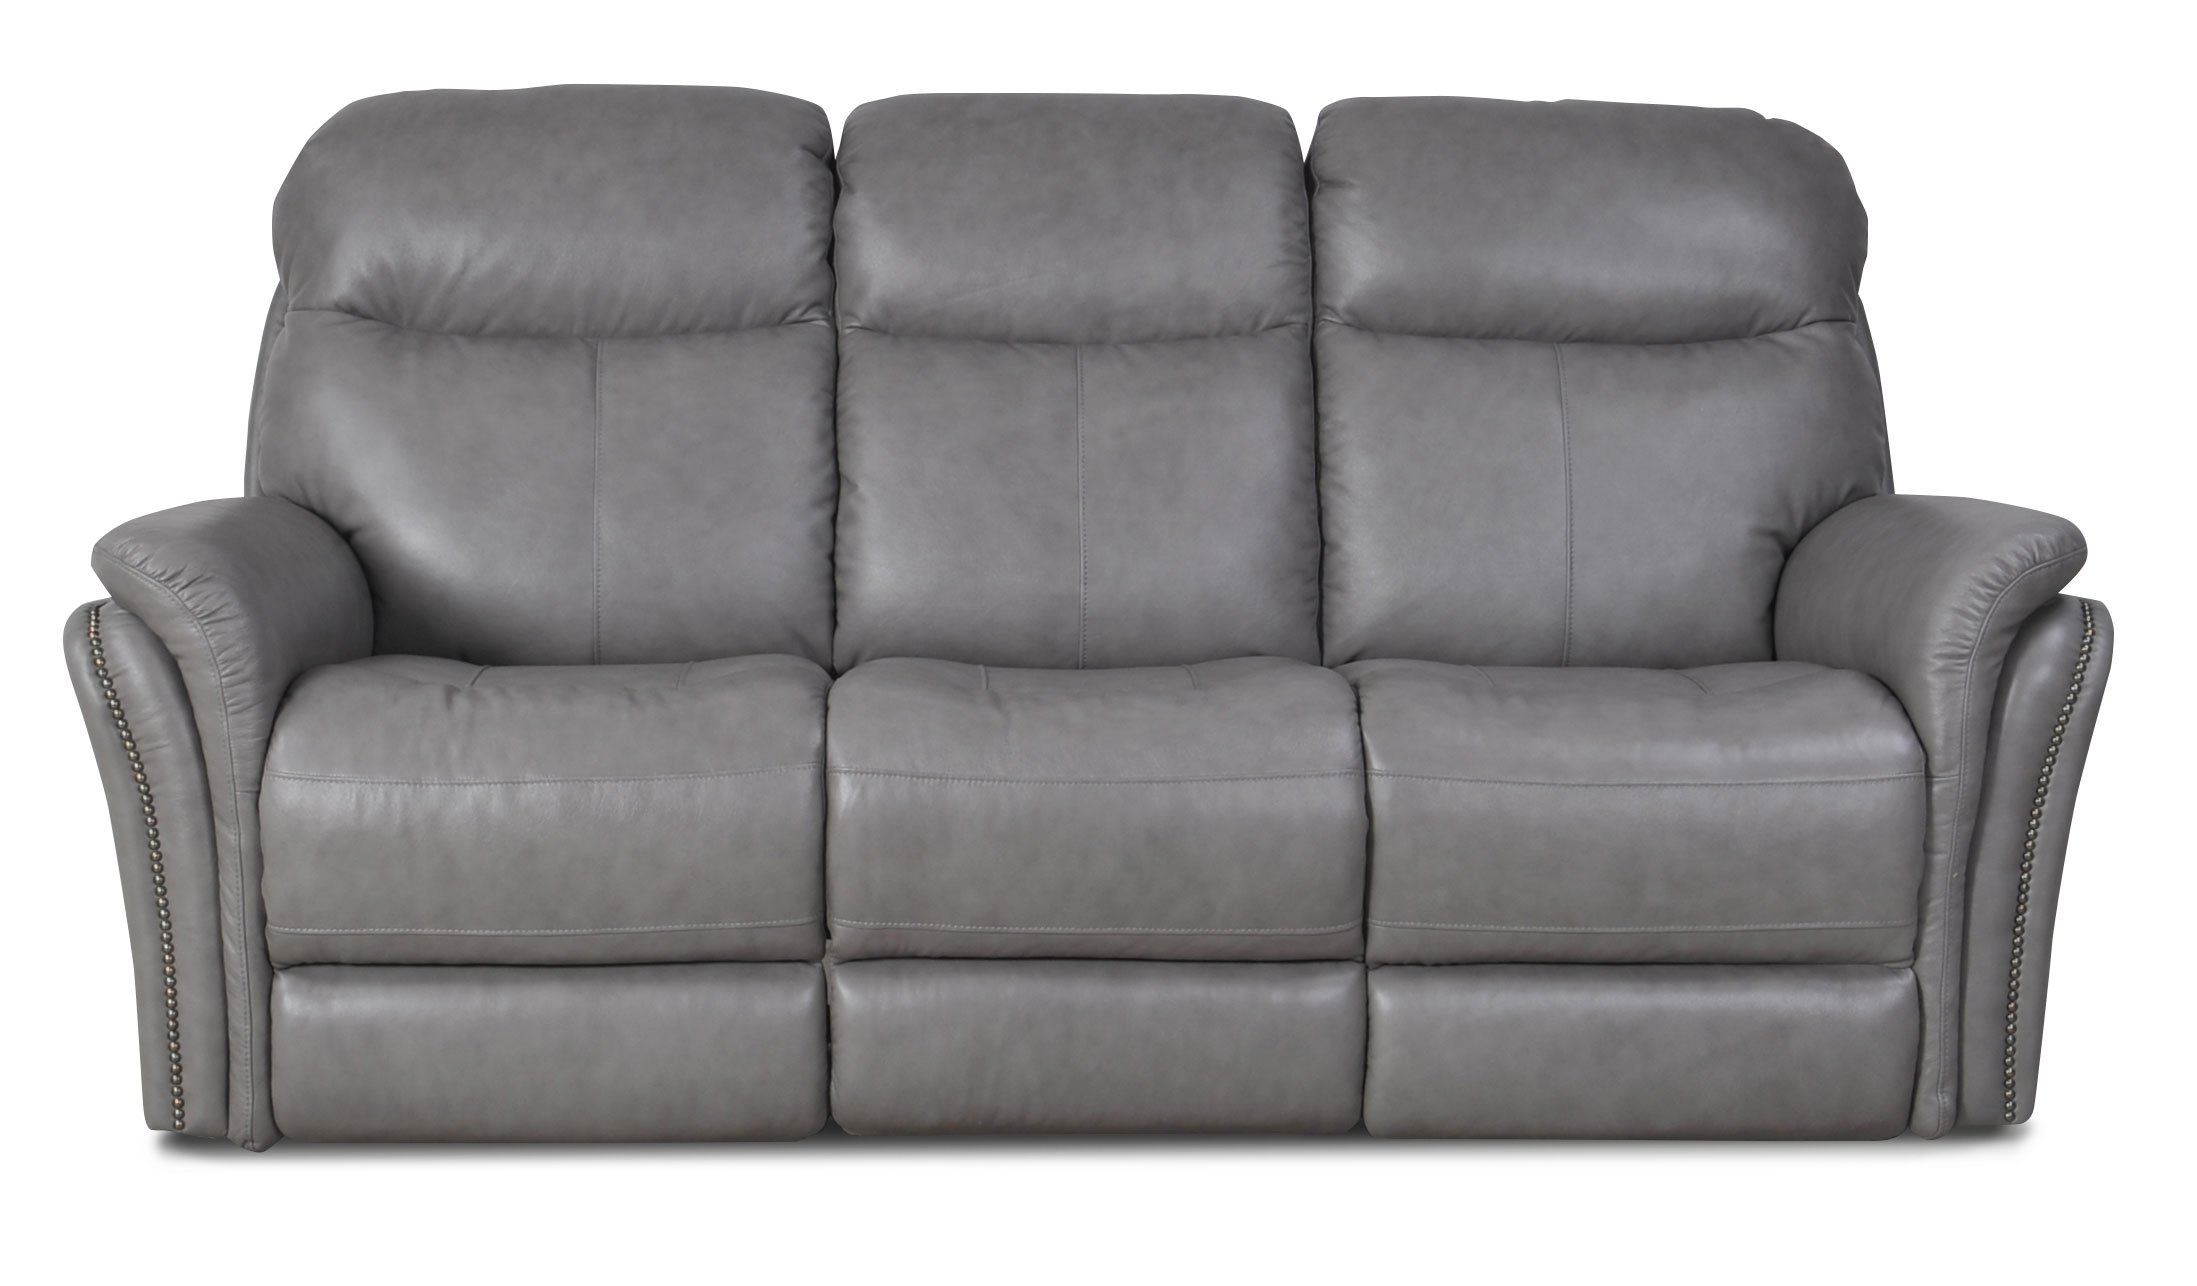 Gray Leather Match Power Reclining Sofa Loveseat Graham Rc Willey Furniture Store